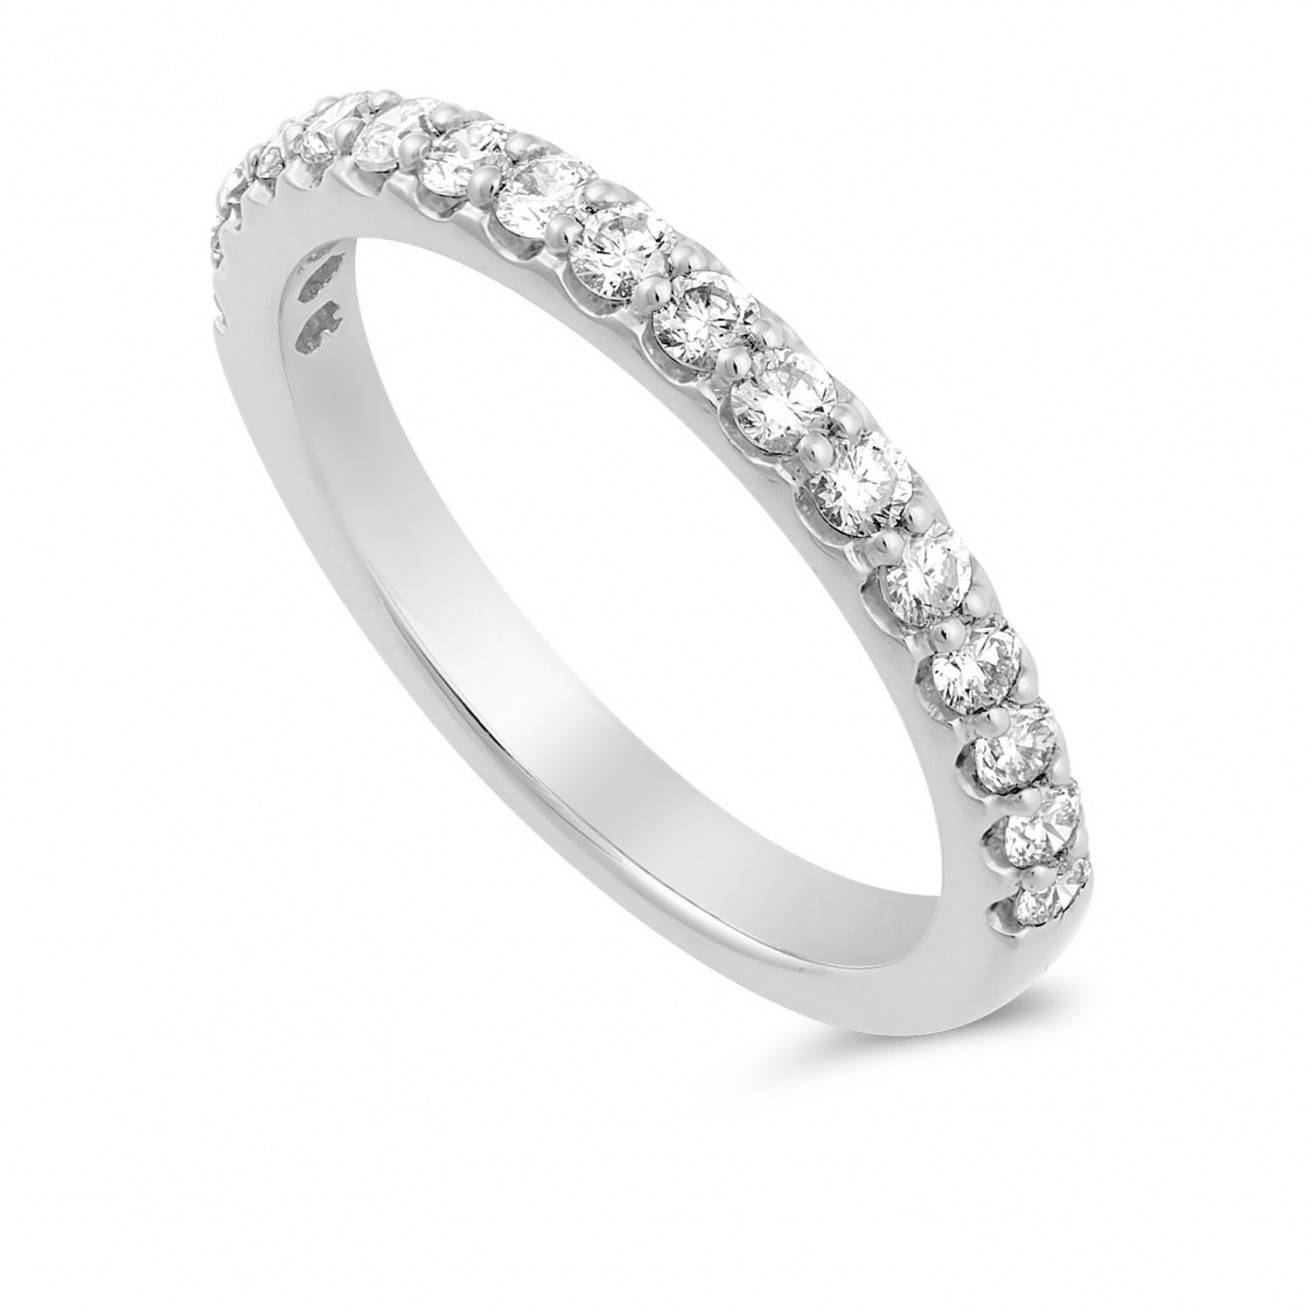 Buy A Diamond Wedding Ring Online – Fraser Hart Within Diamond Band Wedding Rings (View 6 of 15)